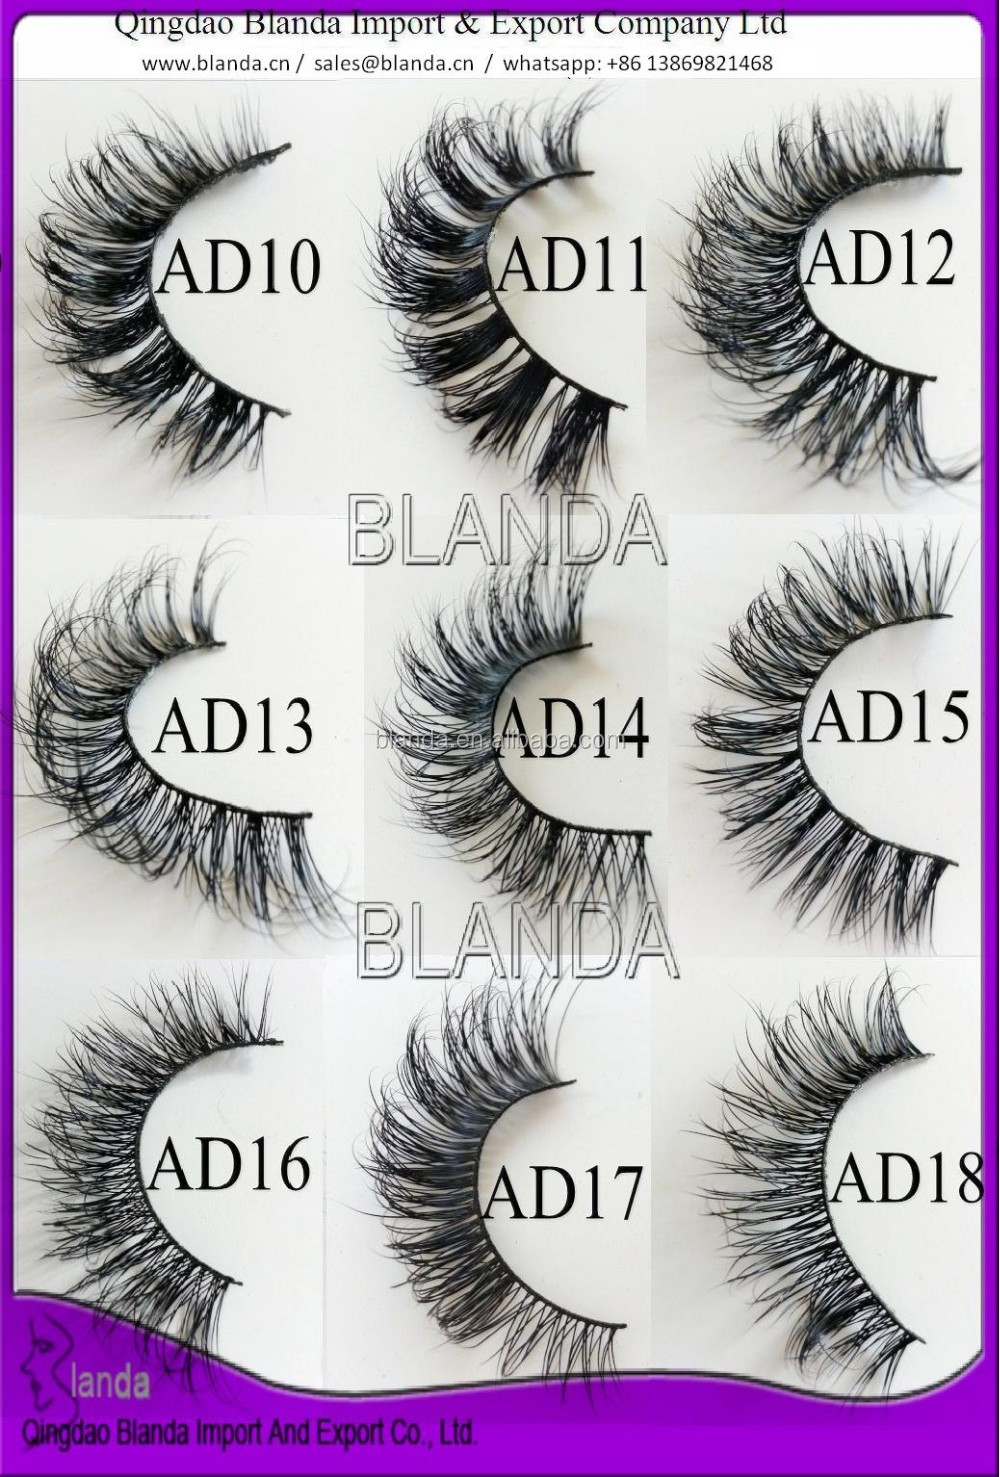 3D mink lashes -2 (AD style ).jpg